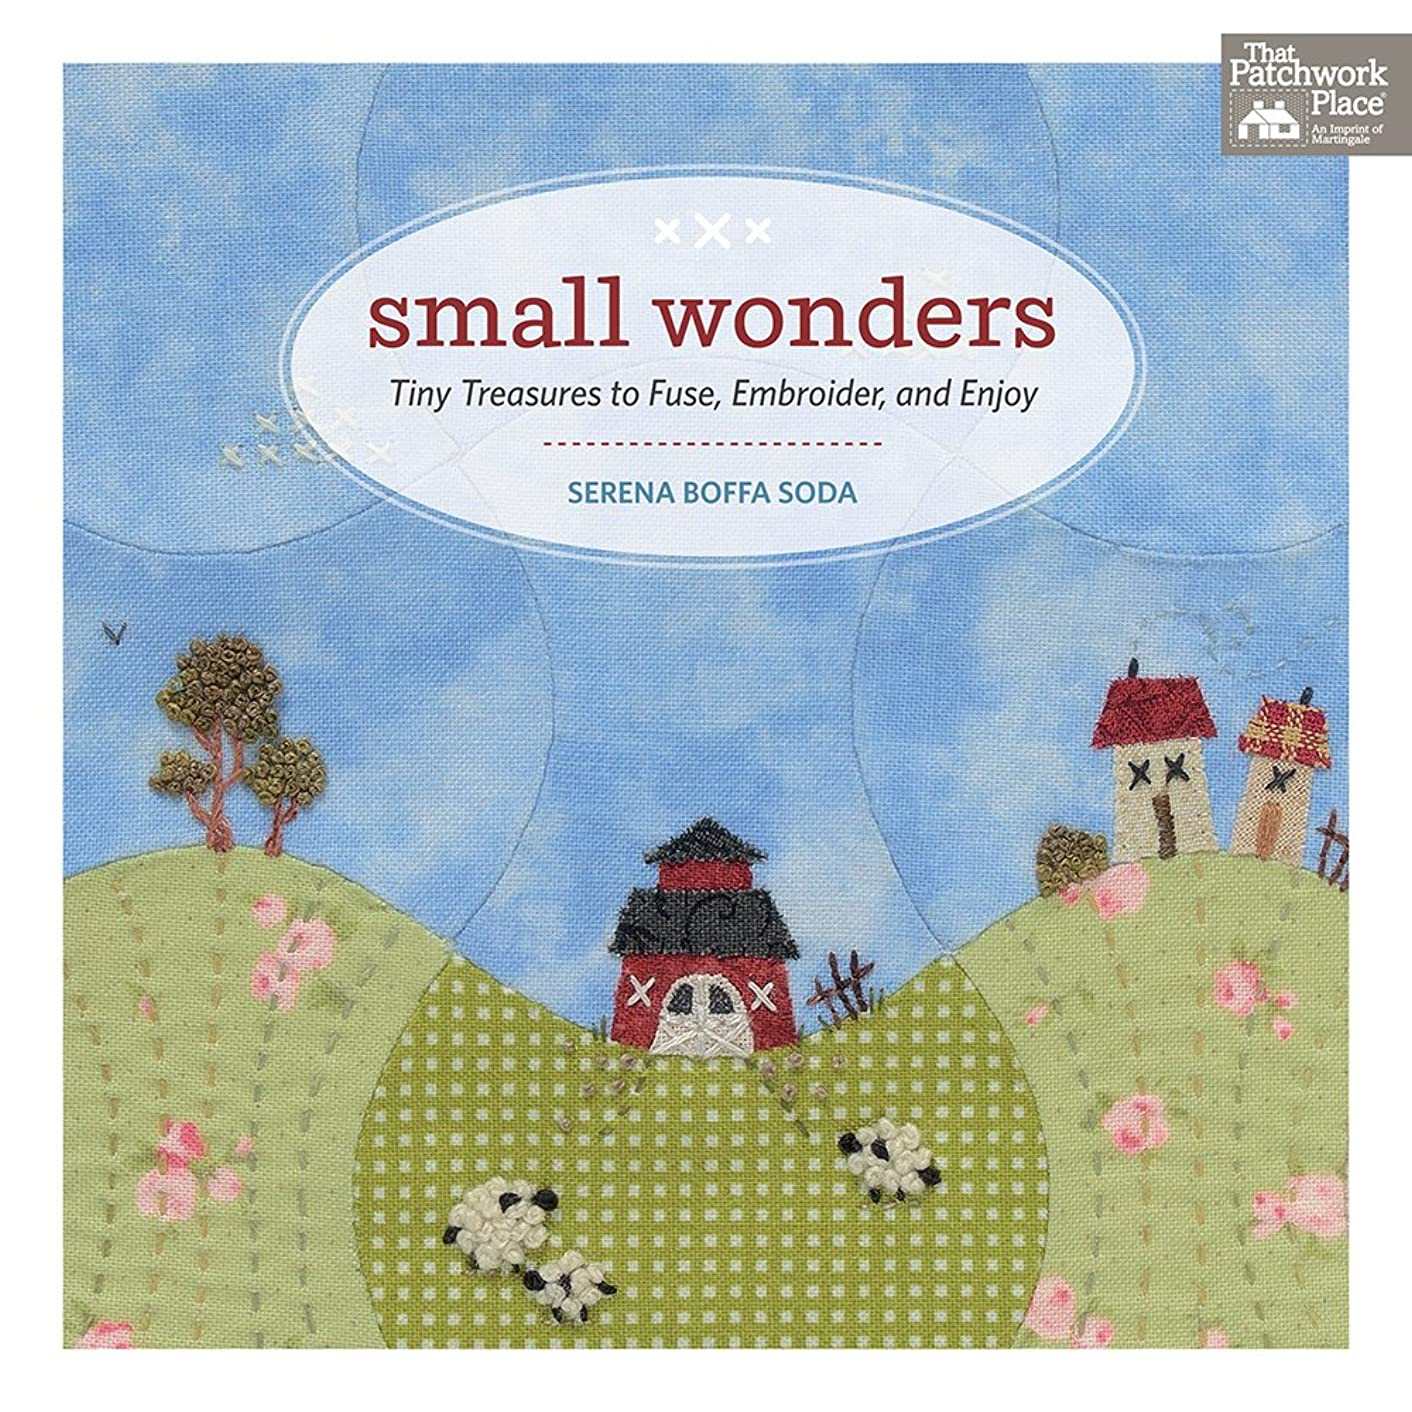 Small Wonders: Tiny Treasures to Fuse, Embroider, and Enjoy